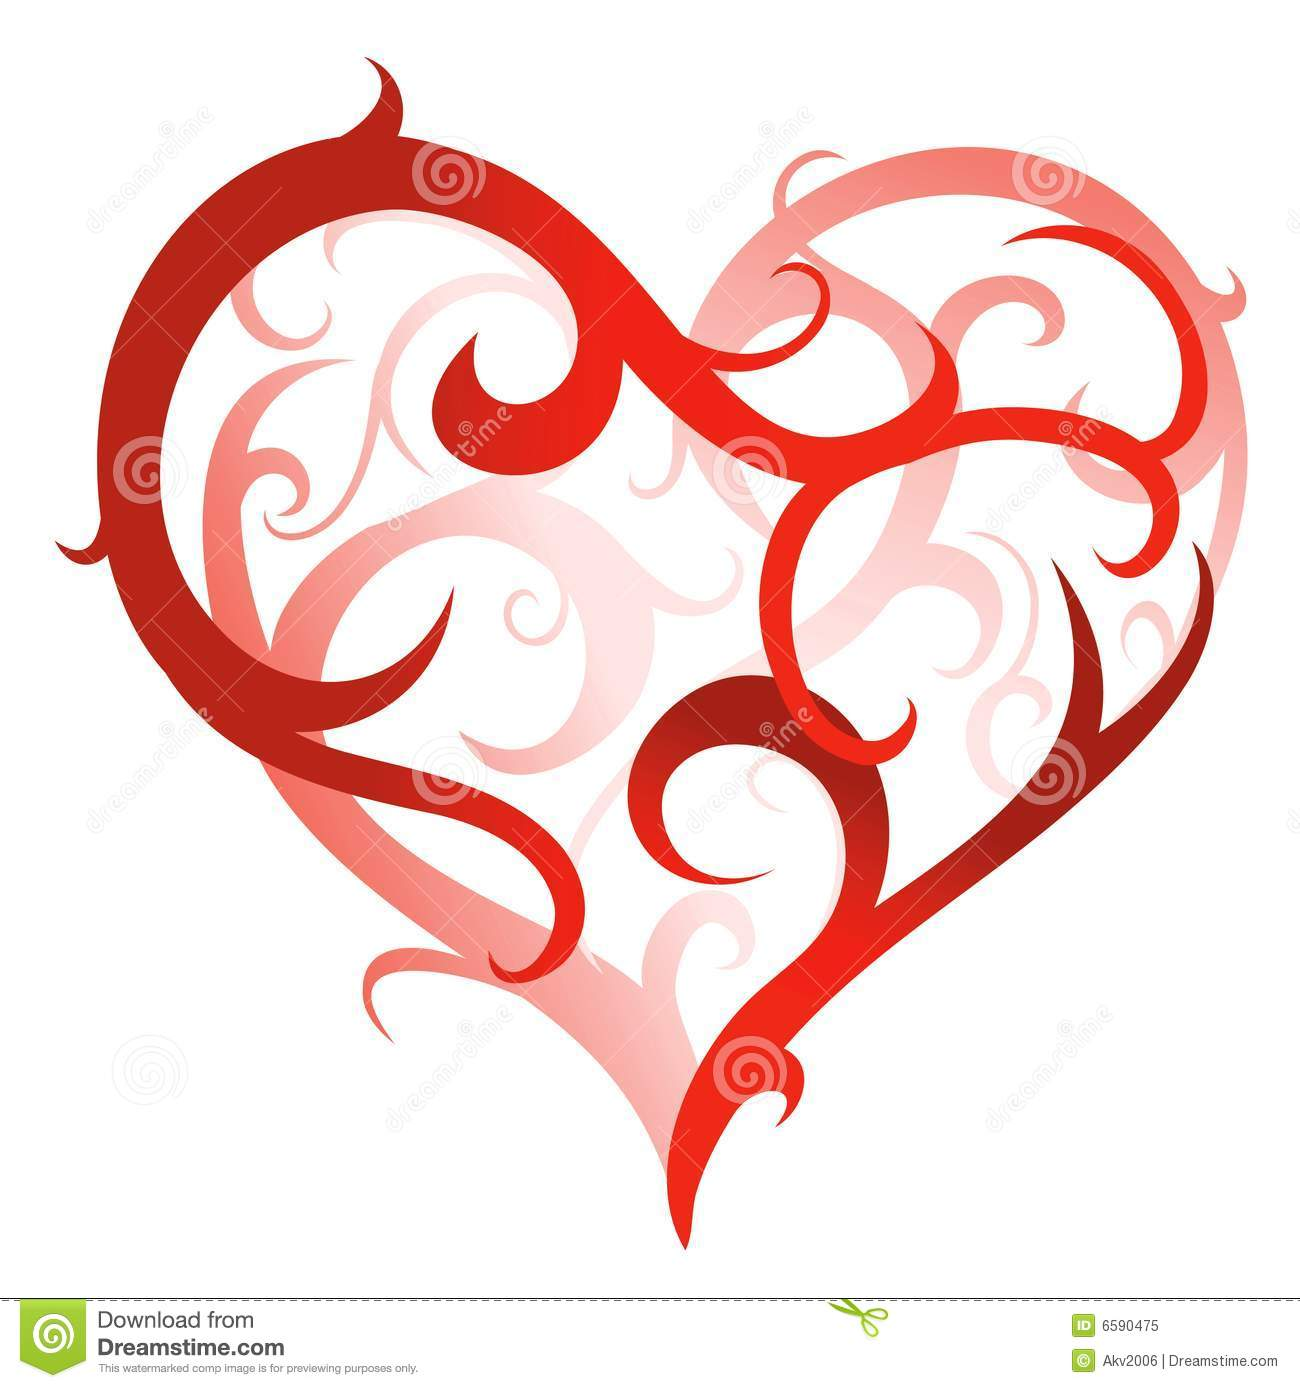 Artistic Heart Shape Royalty Free Stock Photo Image 6590475